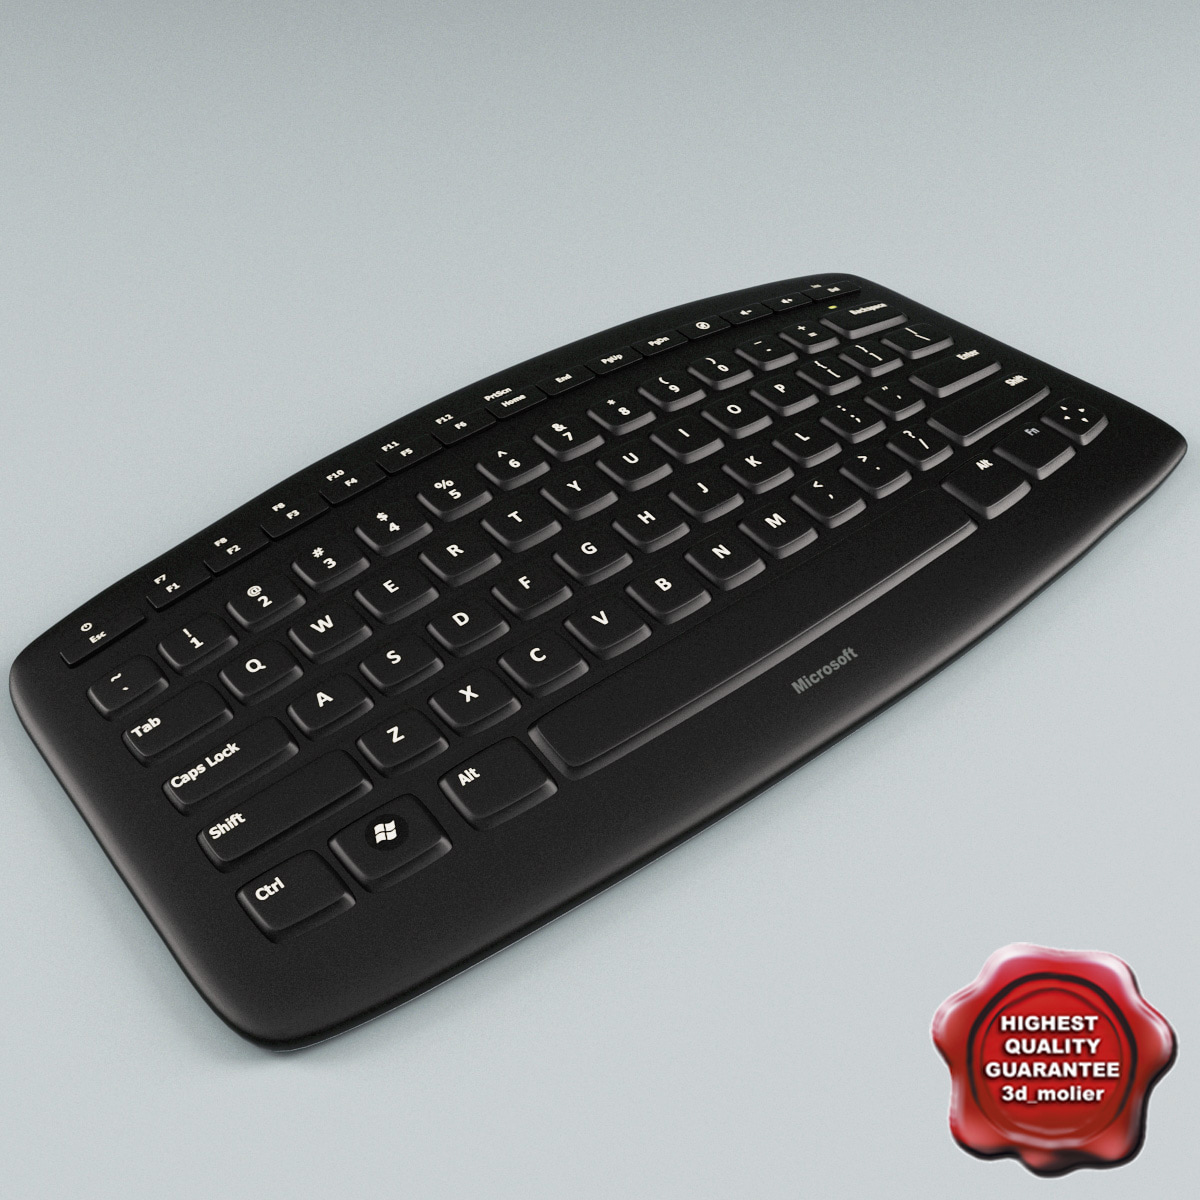 Microsoft_Arc_Keyboard_00.jpg